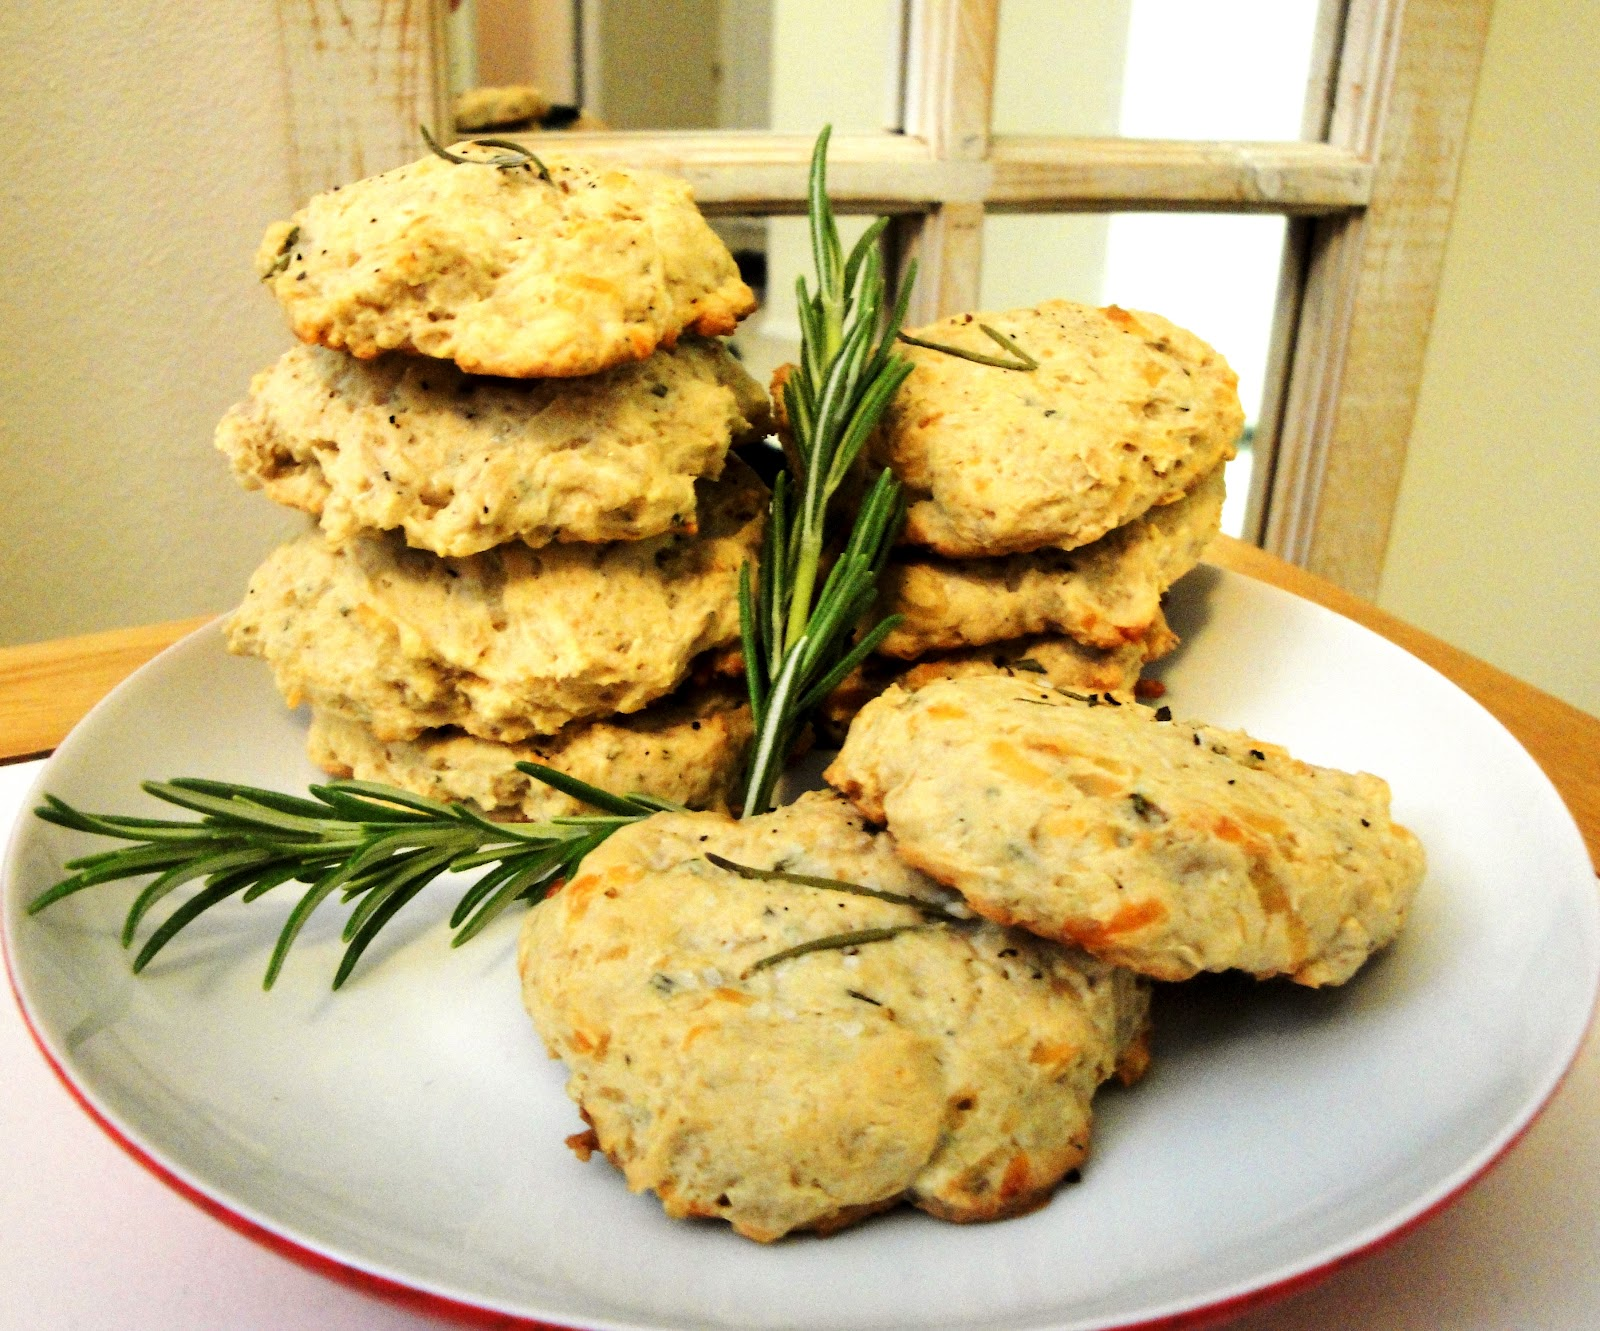 MD cooks for two: Savory Oatmeal Cookies - Parmesan & Rosemary